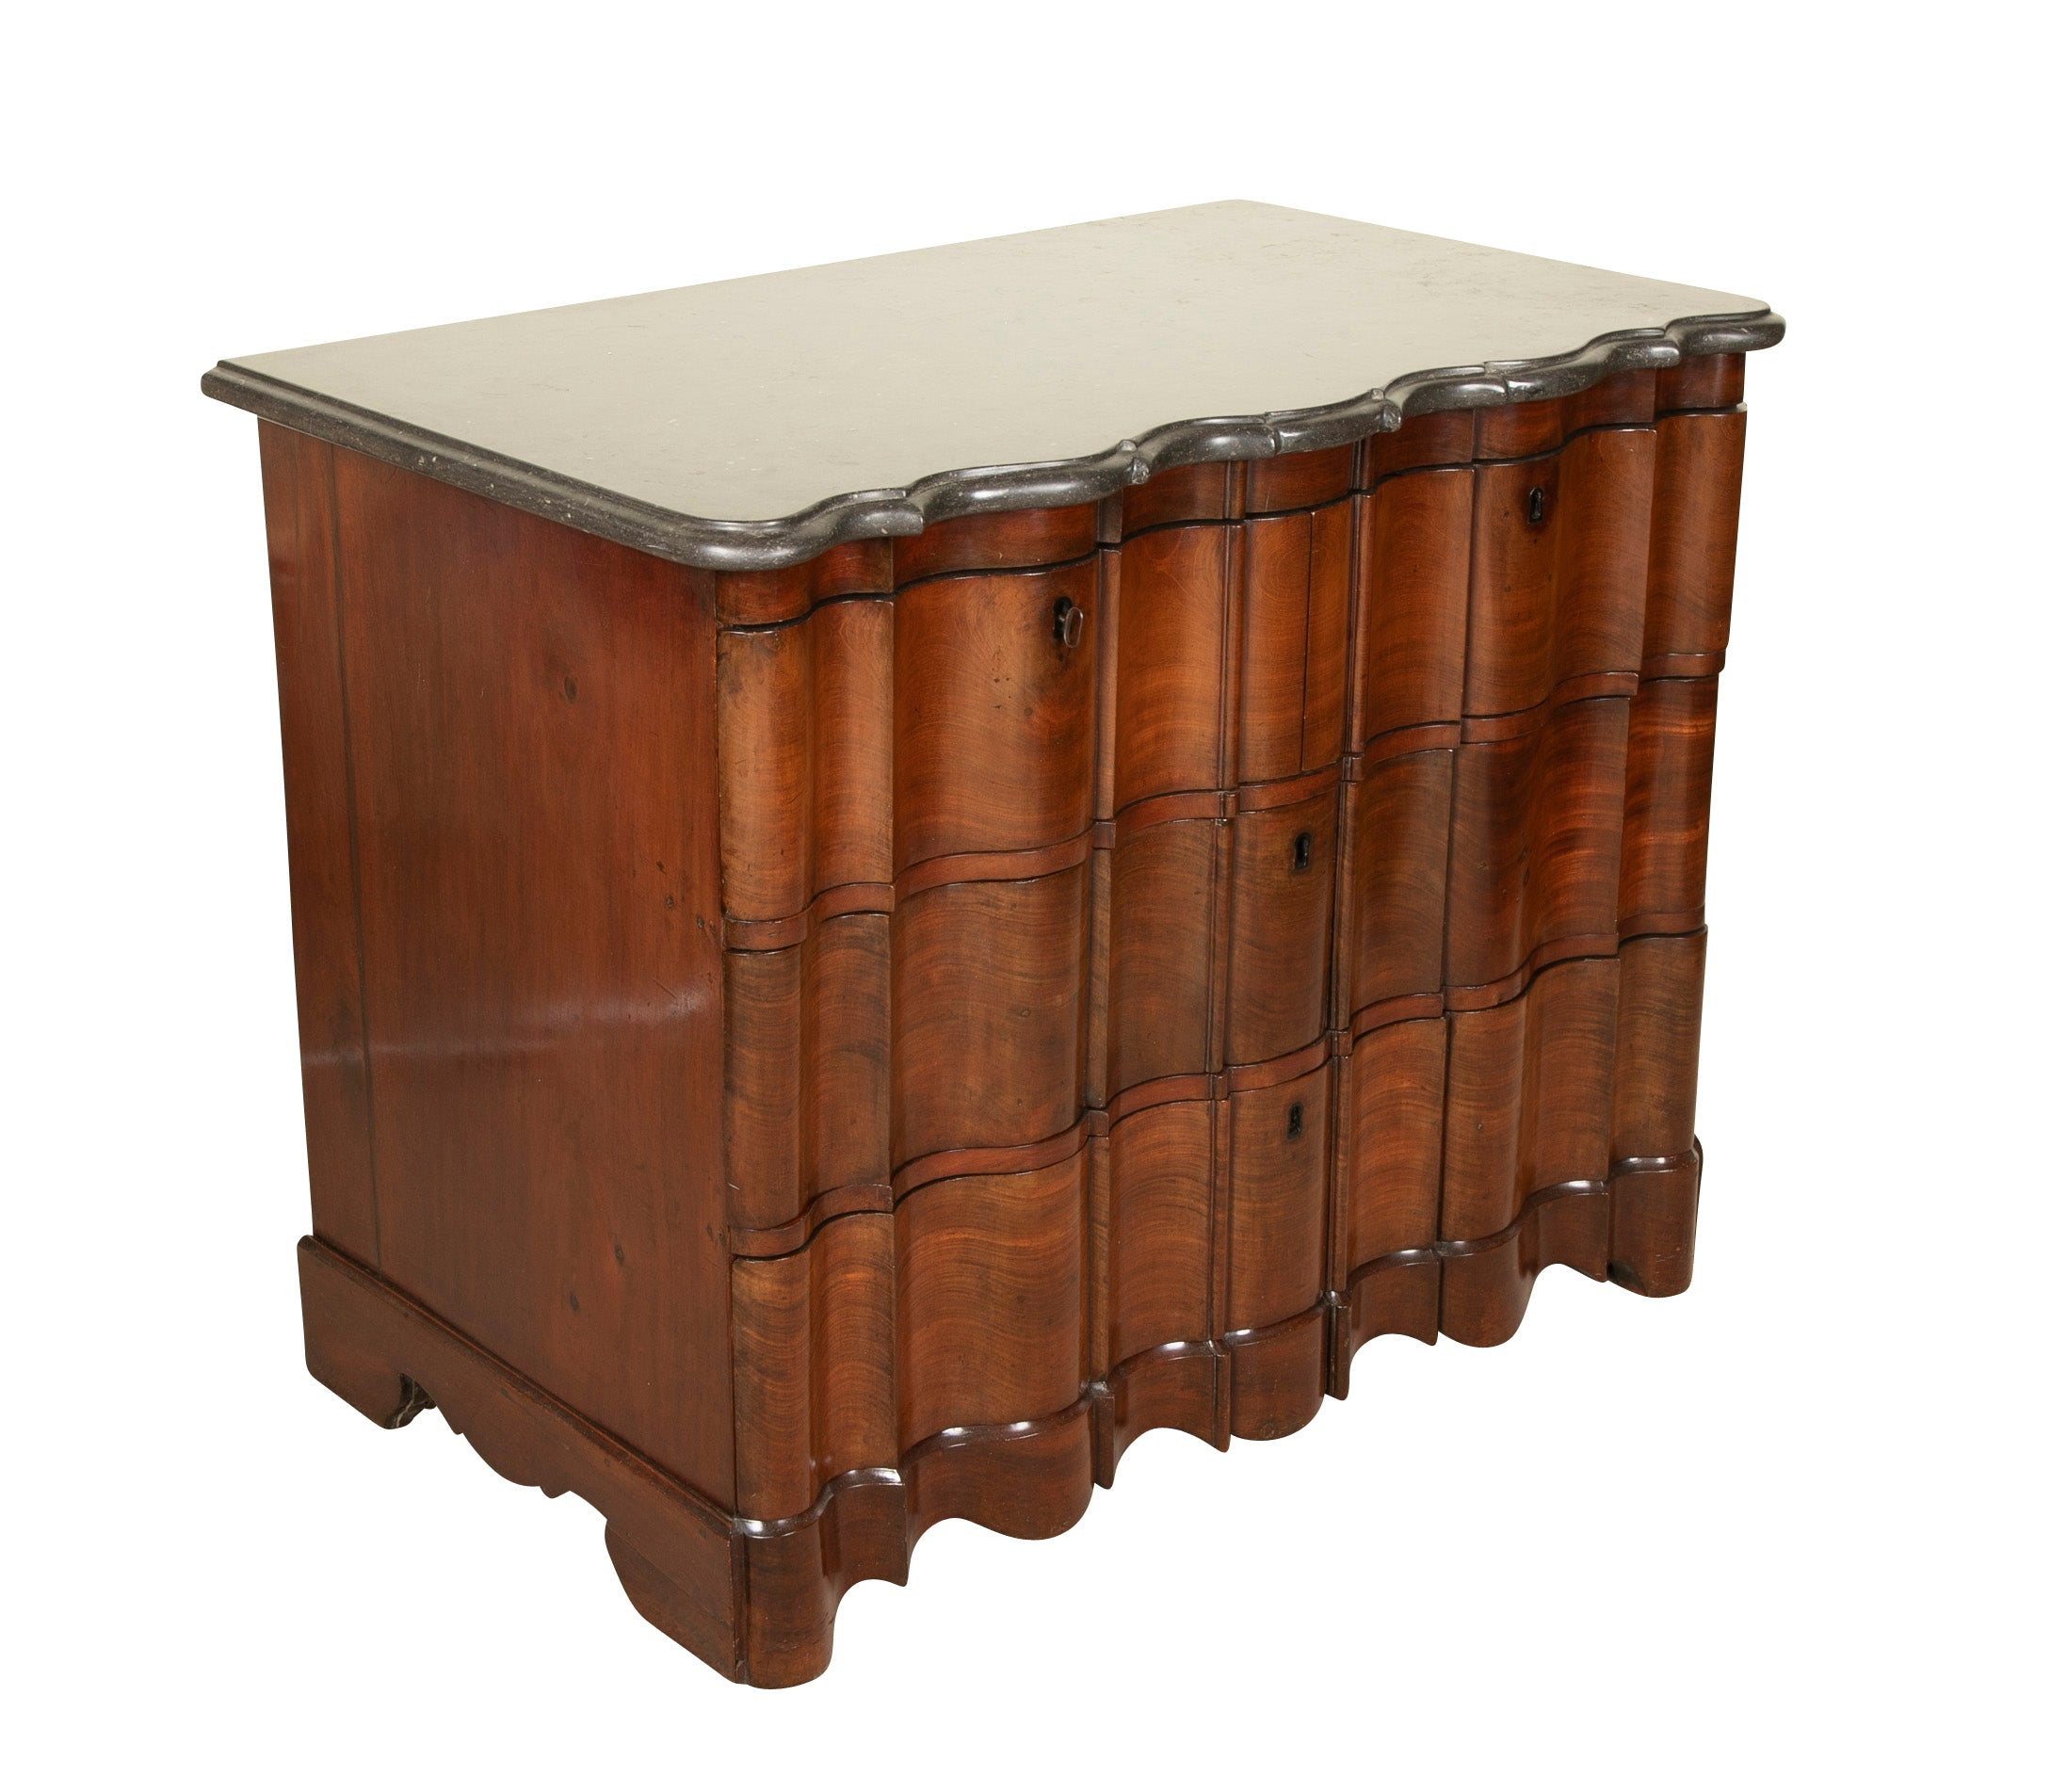 A Handsome Baroque Four Drawer Walnut Chest with Original Shaped Marble Top